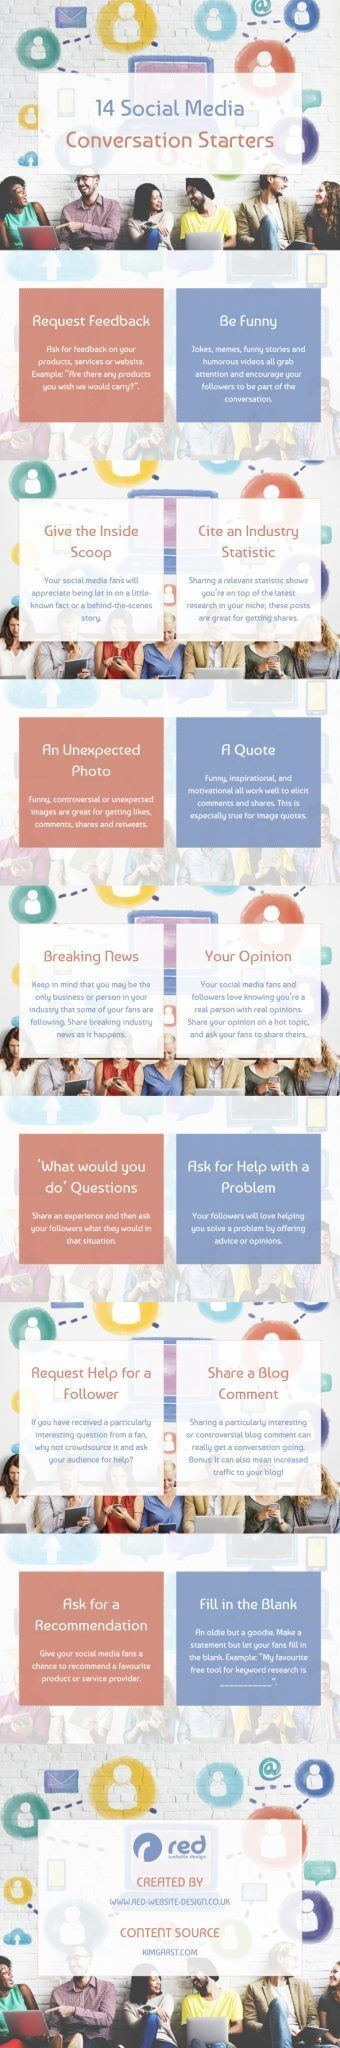 14-Types-of-Social-Media-Post-to-Spark-Engagement-With-Your-Followers-768x4623